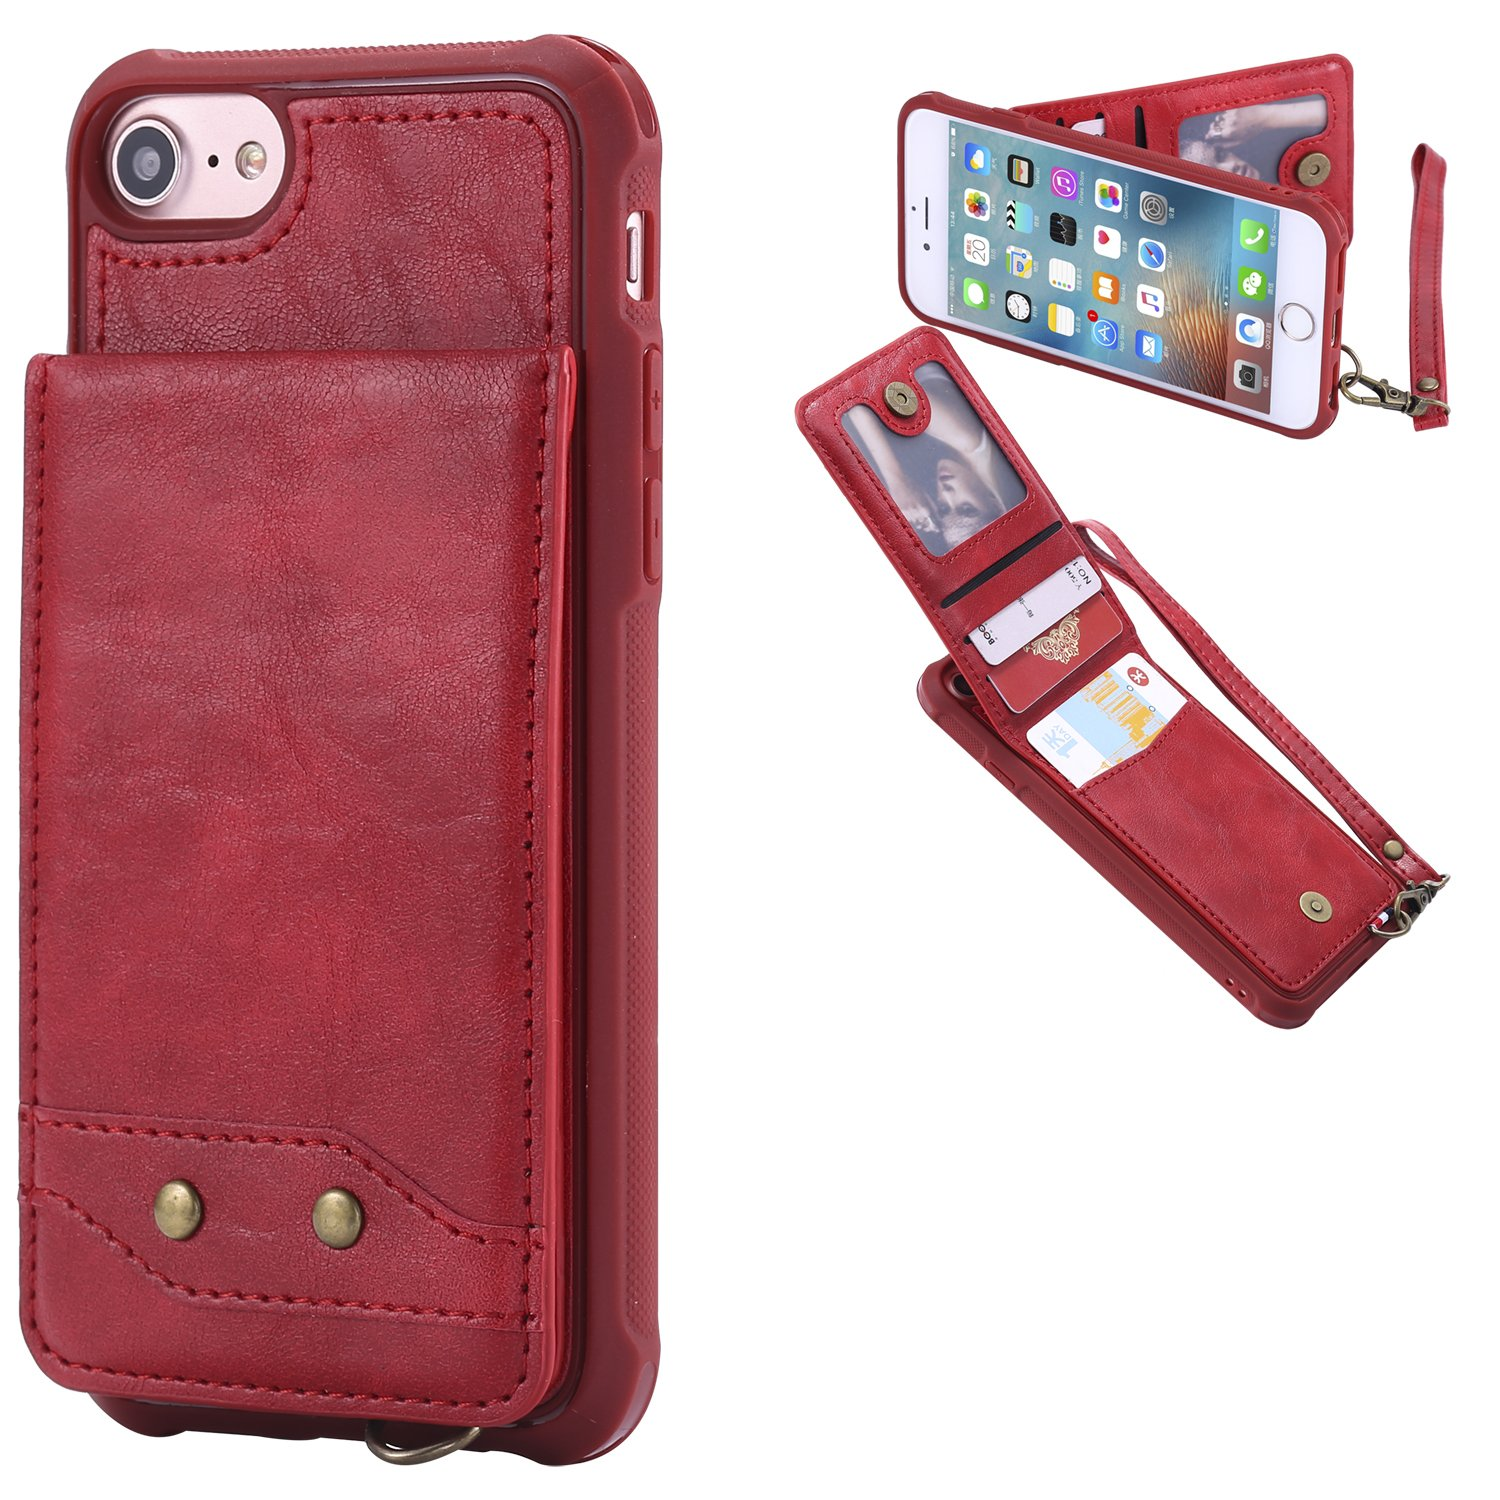 DAMONDY iPhone 6s Plus,iPhone 6 Plus, Luxury Wallet Purse Card Holders Design Cover Soft Shockproof Bumper Flip Leather Kickstand Magnetic Clasp With Wrist Strap Case for iPhone 6s/6 Plus-red